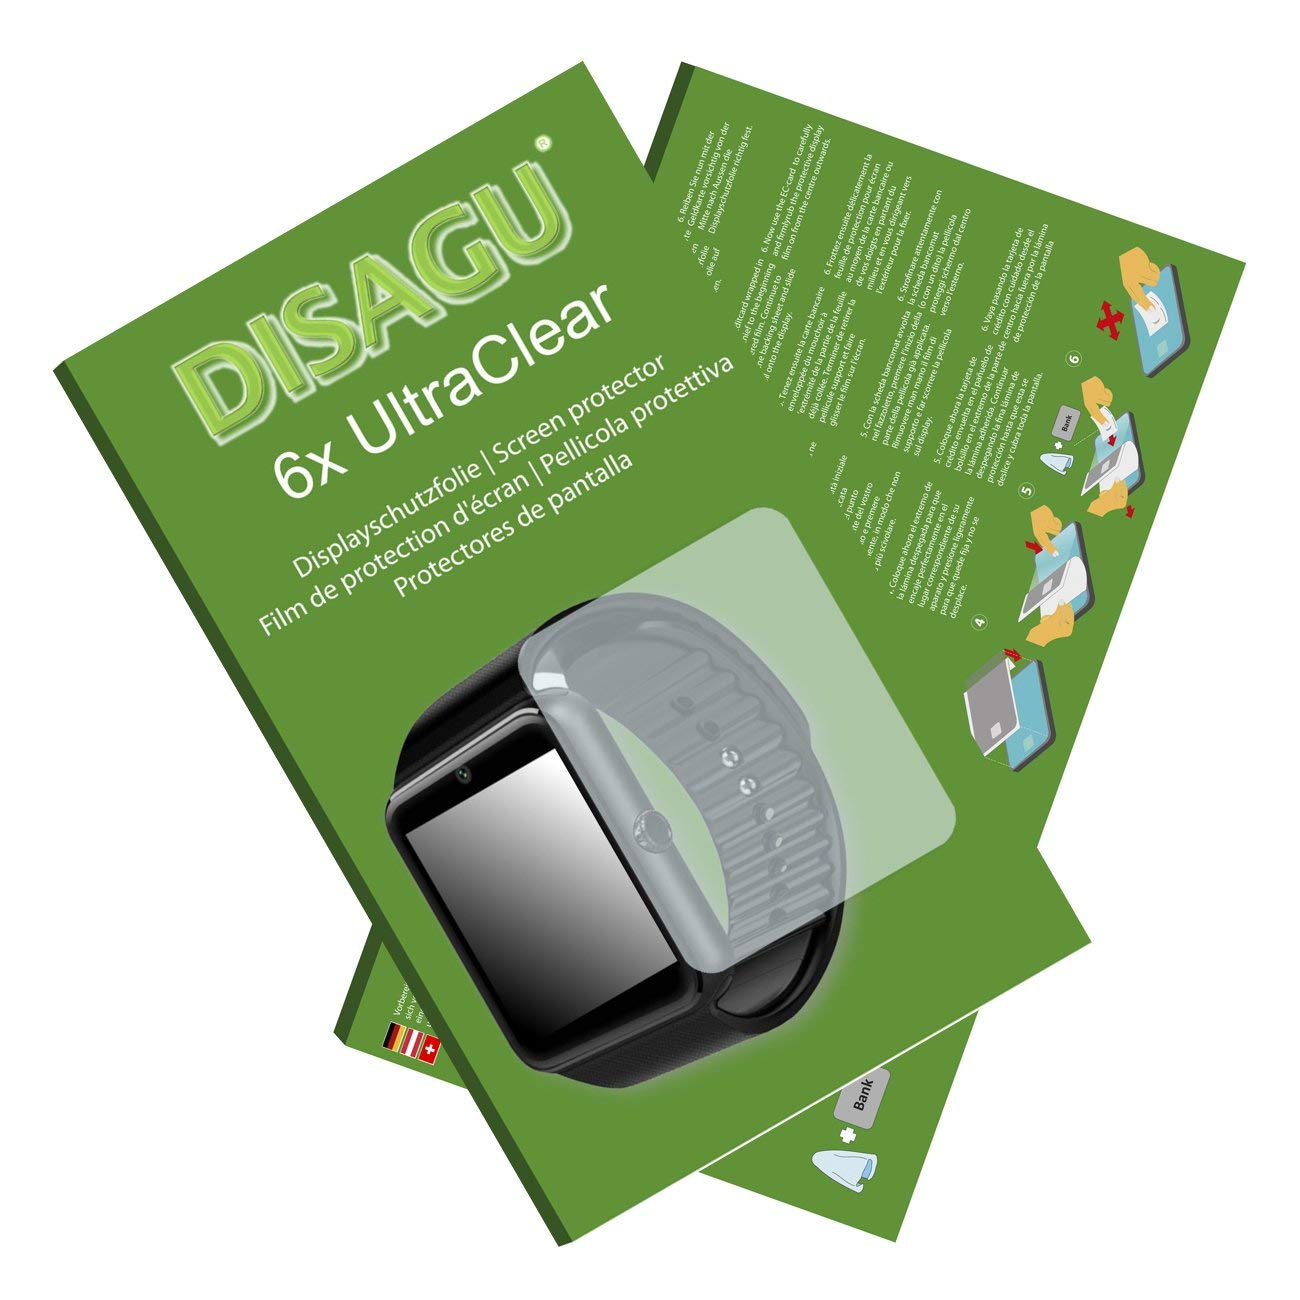 DISAGU 6X Ultra Clear Screen Protector GSTEK Bluetooth Smart Watch (Intentionally Smaller Than The Display Due to its Curved Surface)